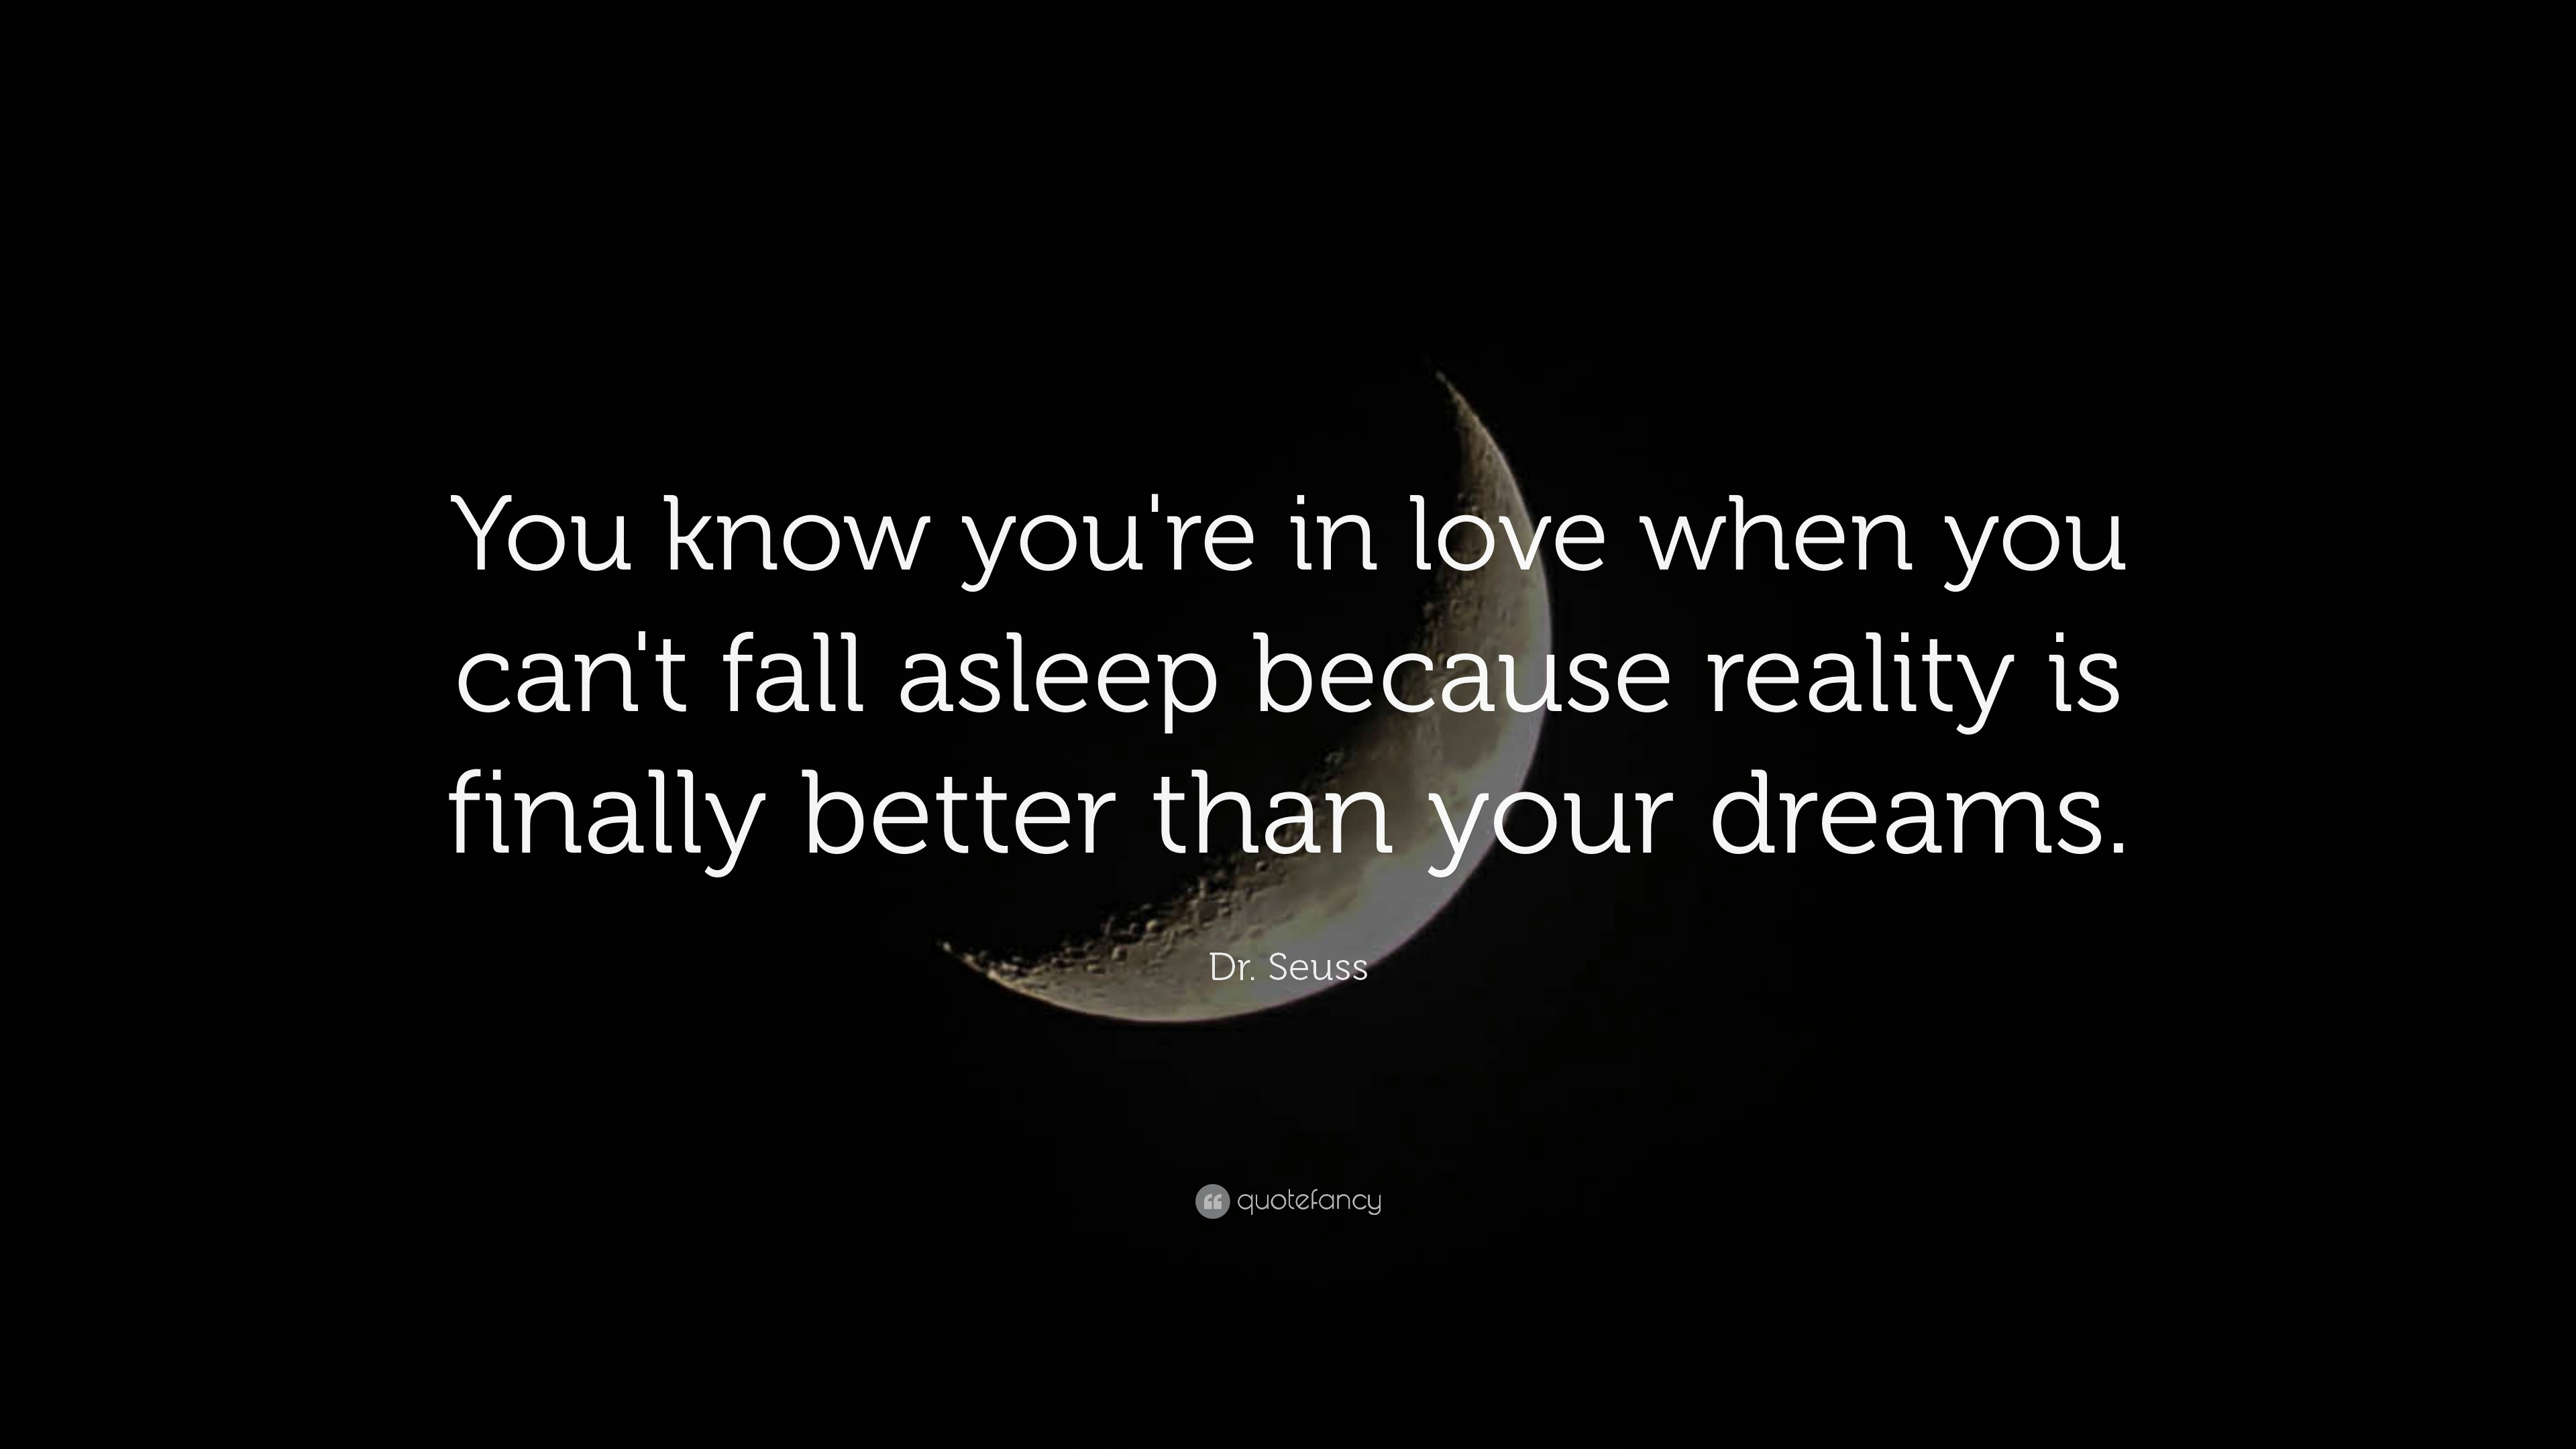 In Love Quotes Glamorous Love Quotes 26 Wallpapers  Quotefancy